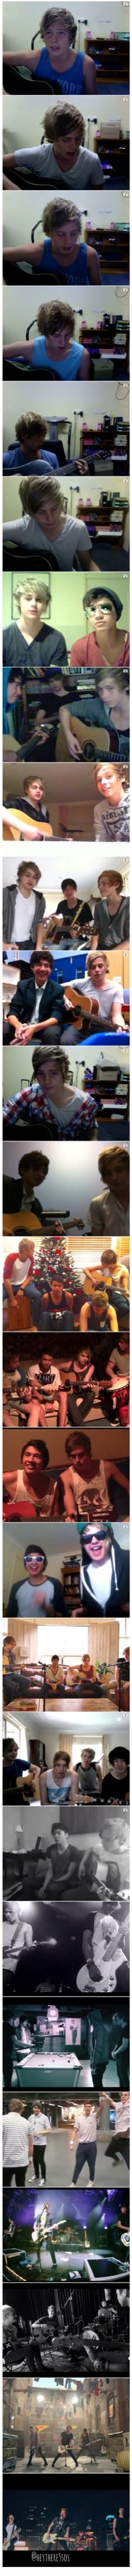 My beautiful boys..how they grew up so fast?